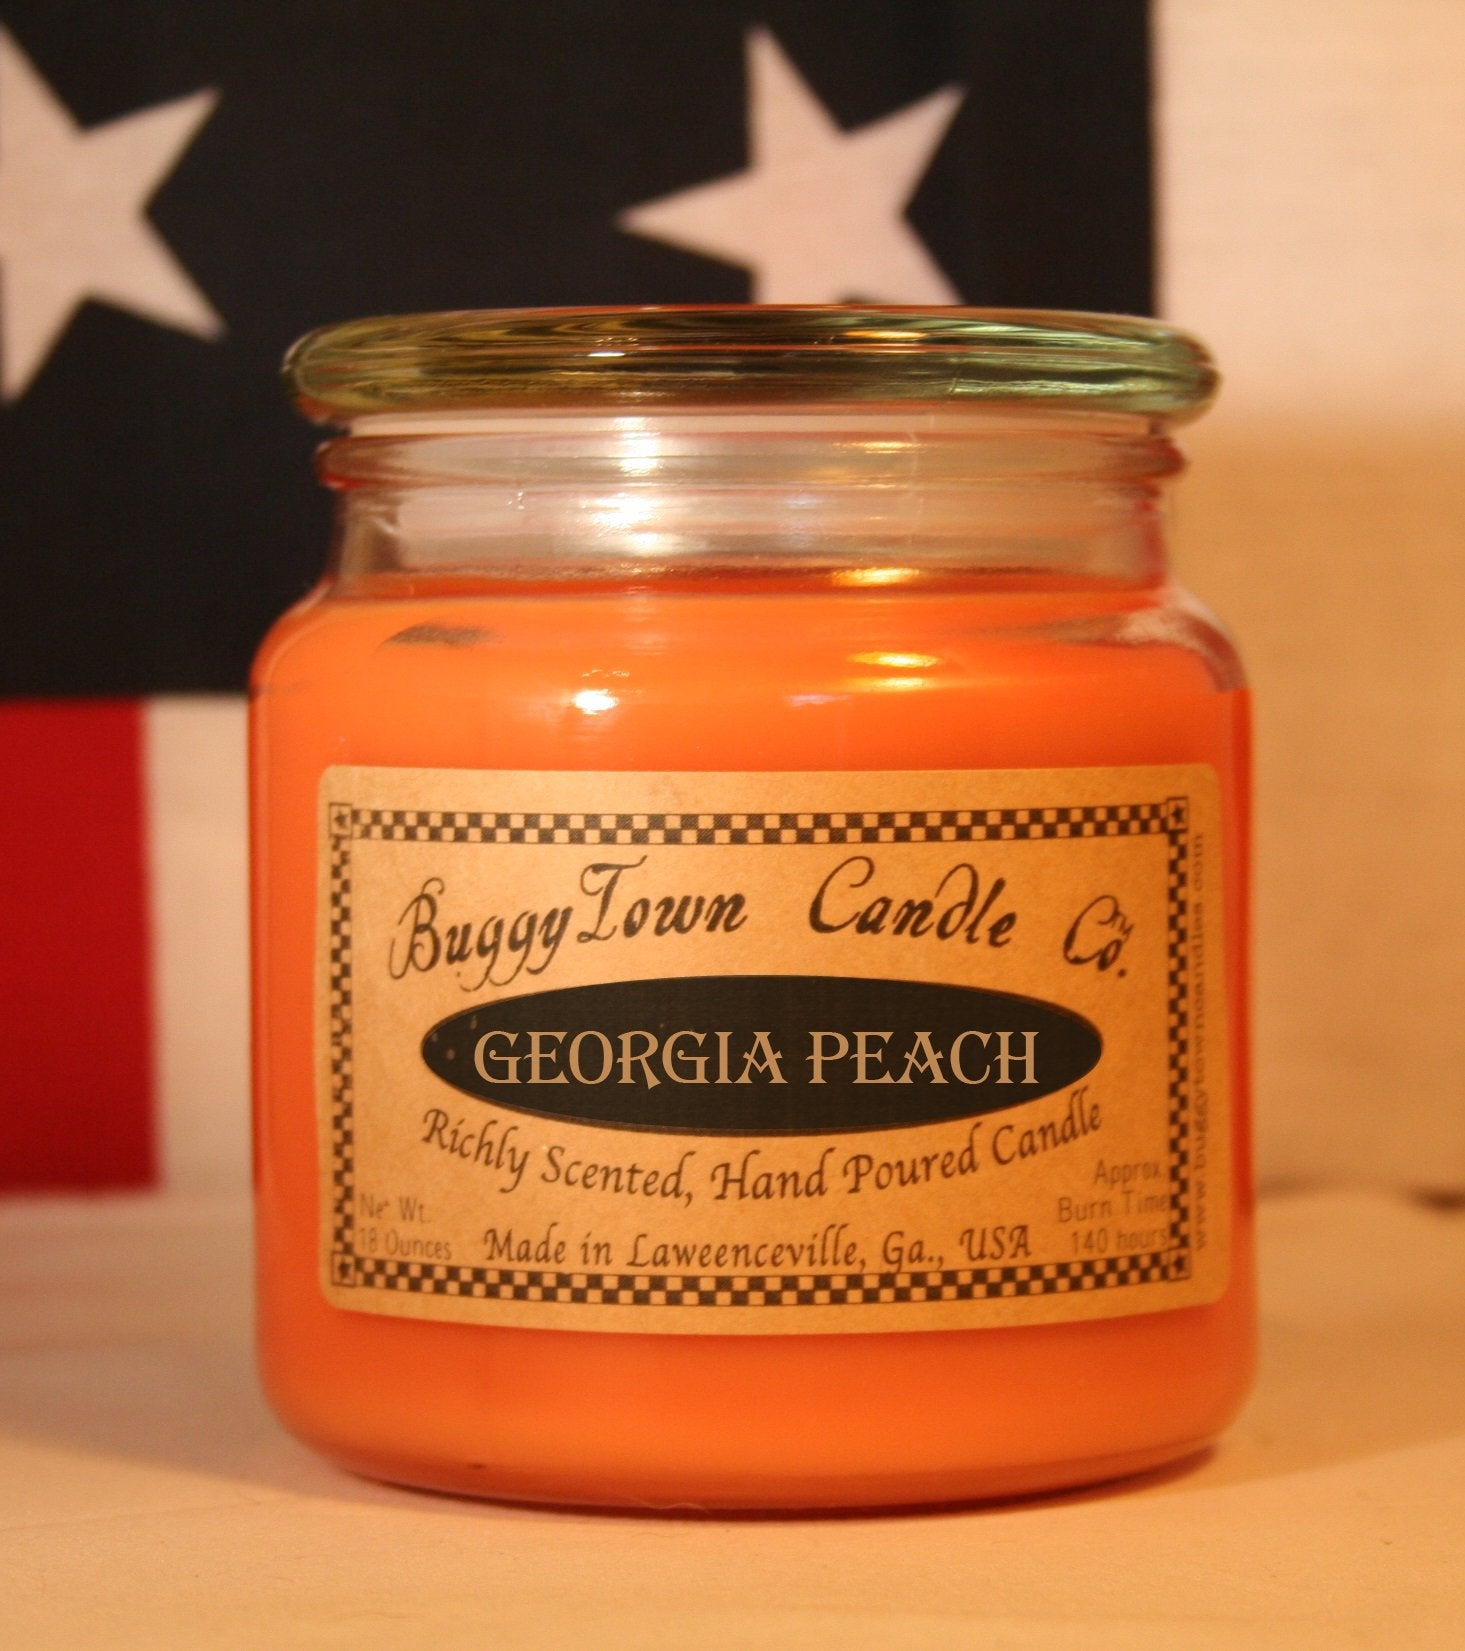 Georgia Peach Candles